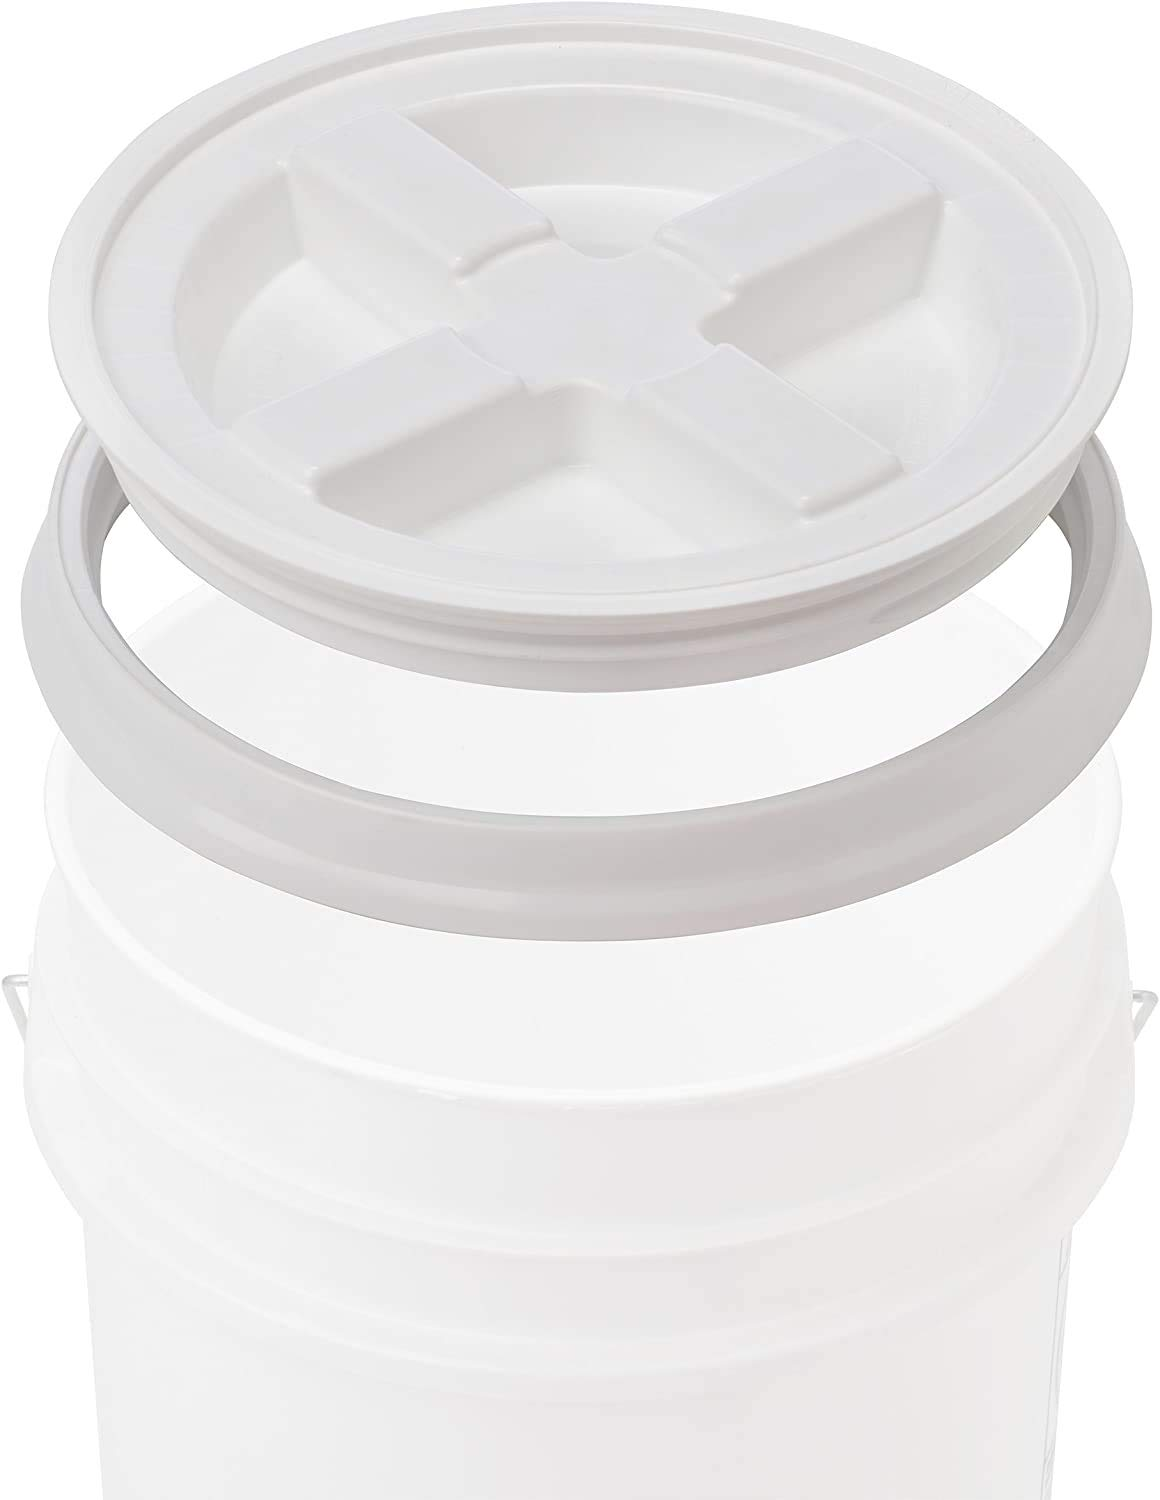 Gamma Seal Lid - White Storage Plastic Container Cover - Food Grade Gasket Airtight Lids - Screw Seal Multipurpose Covers - Fits 3.5 5 7 Gallon Buckets 12 Pack (1 Pack, White)